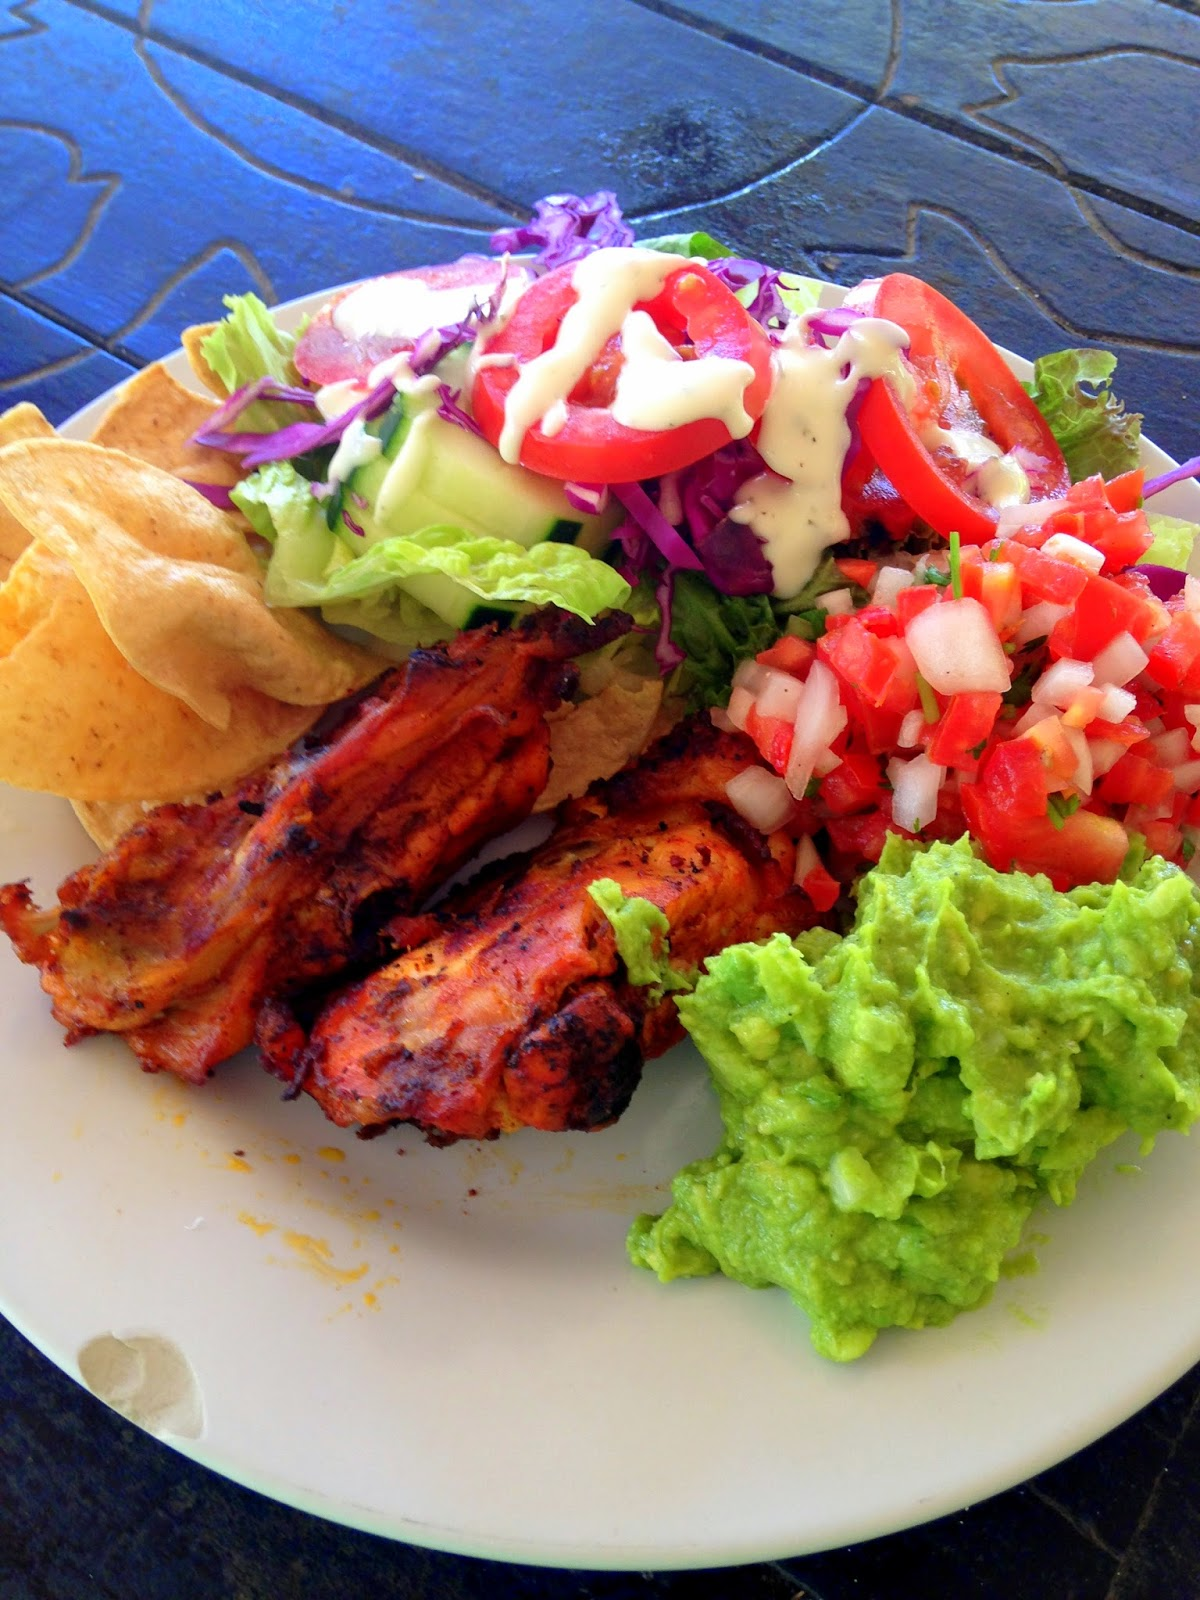 Mexican buffet with chips, pico de gallo, guacamole, barbecue chicken, and salad